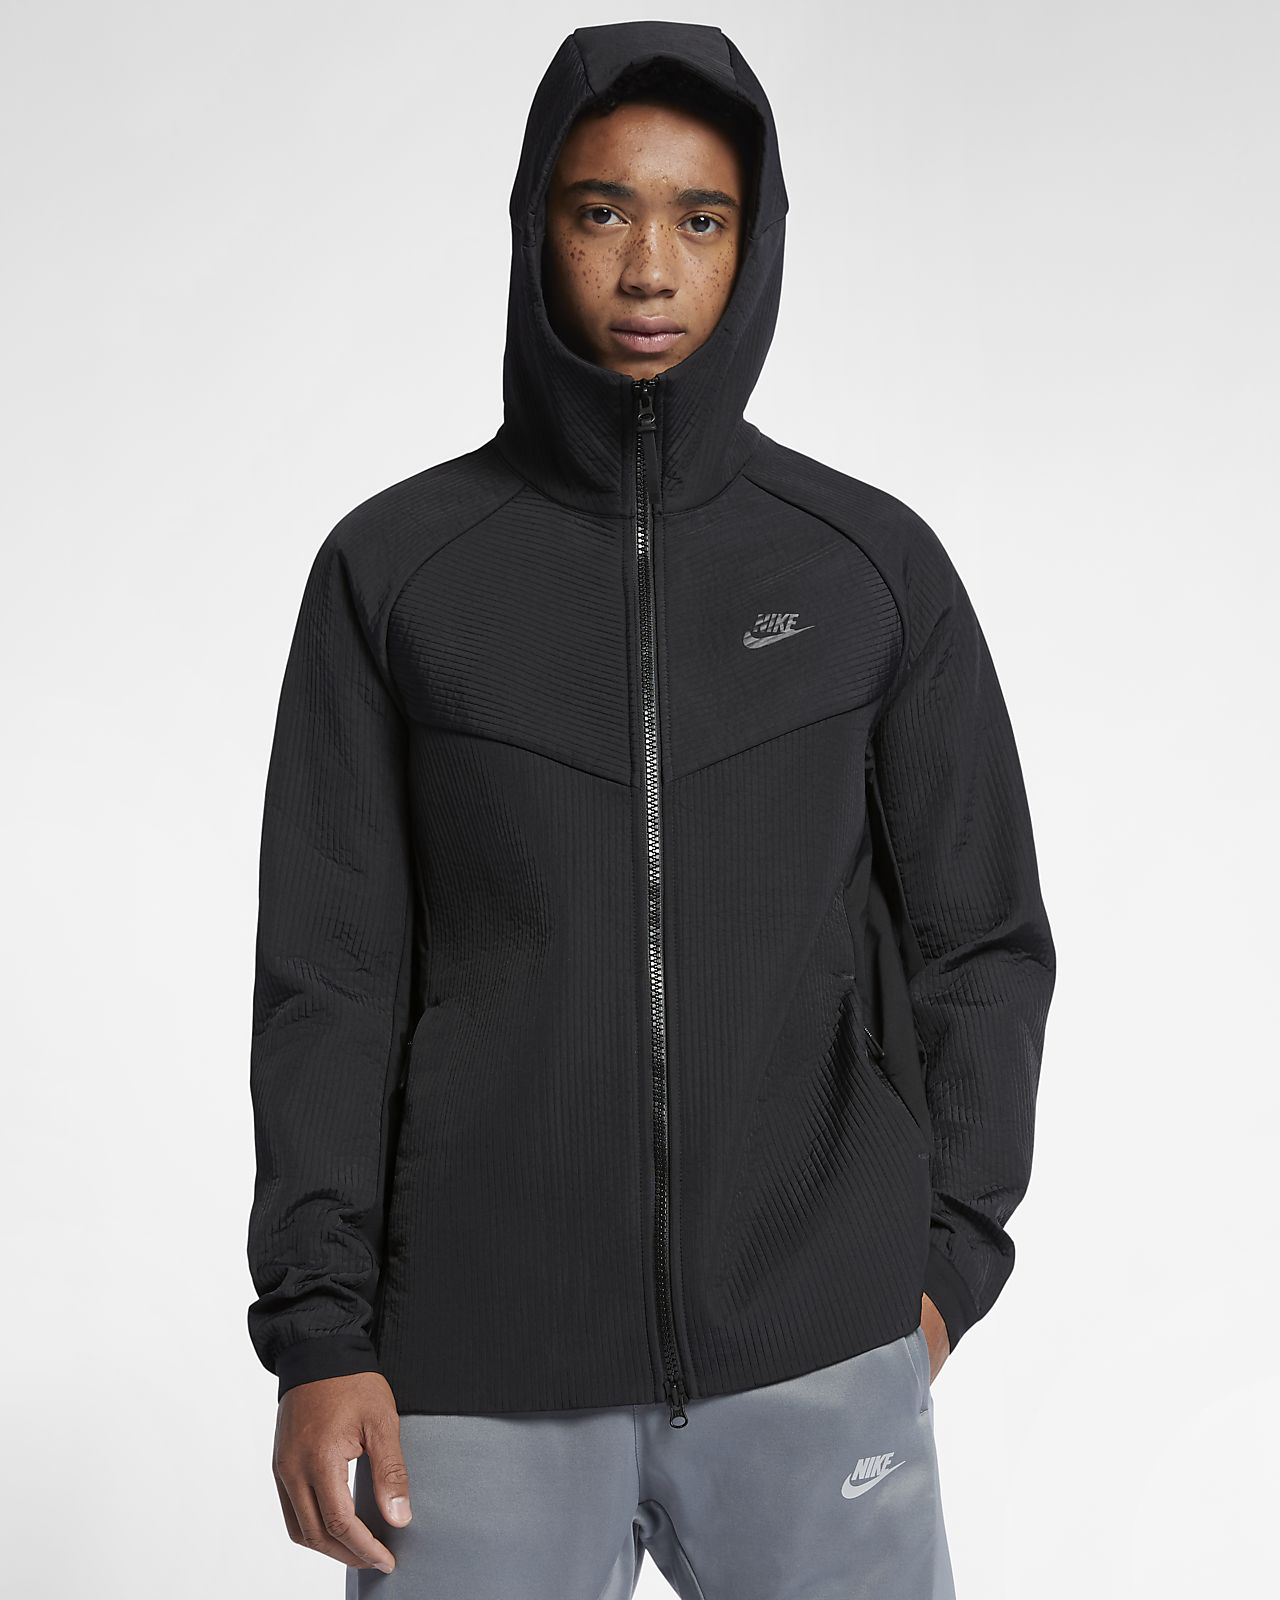 fe2f6442cb71 Nike Sportswear Tech Pack Men s Woven Jacket. Nike.com GB